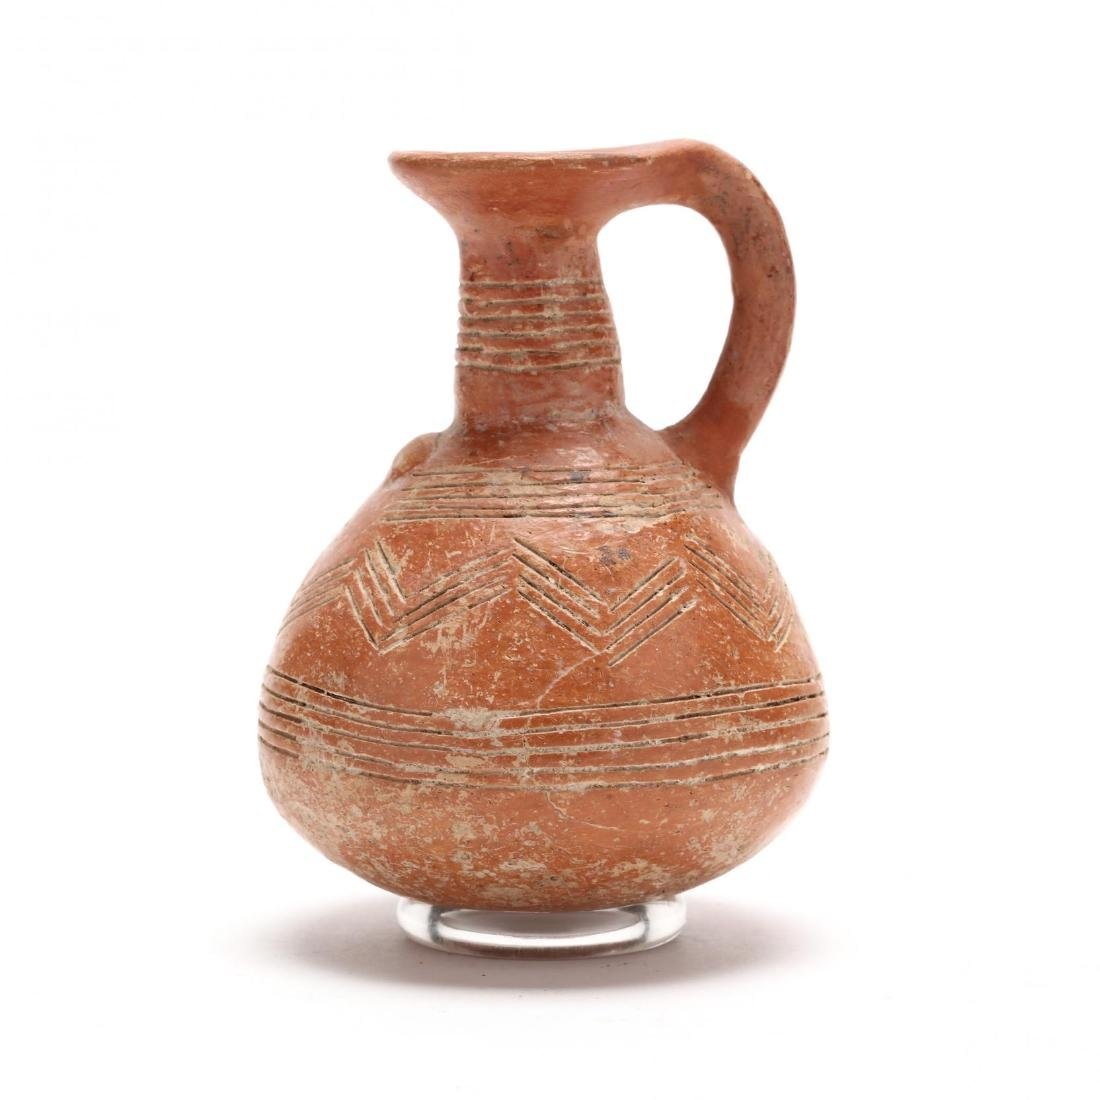 Cypriot Early Bronze Age Polished Red Ware Jug - 3